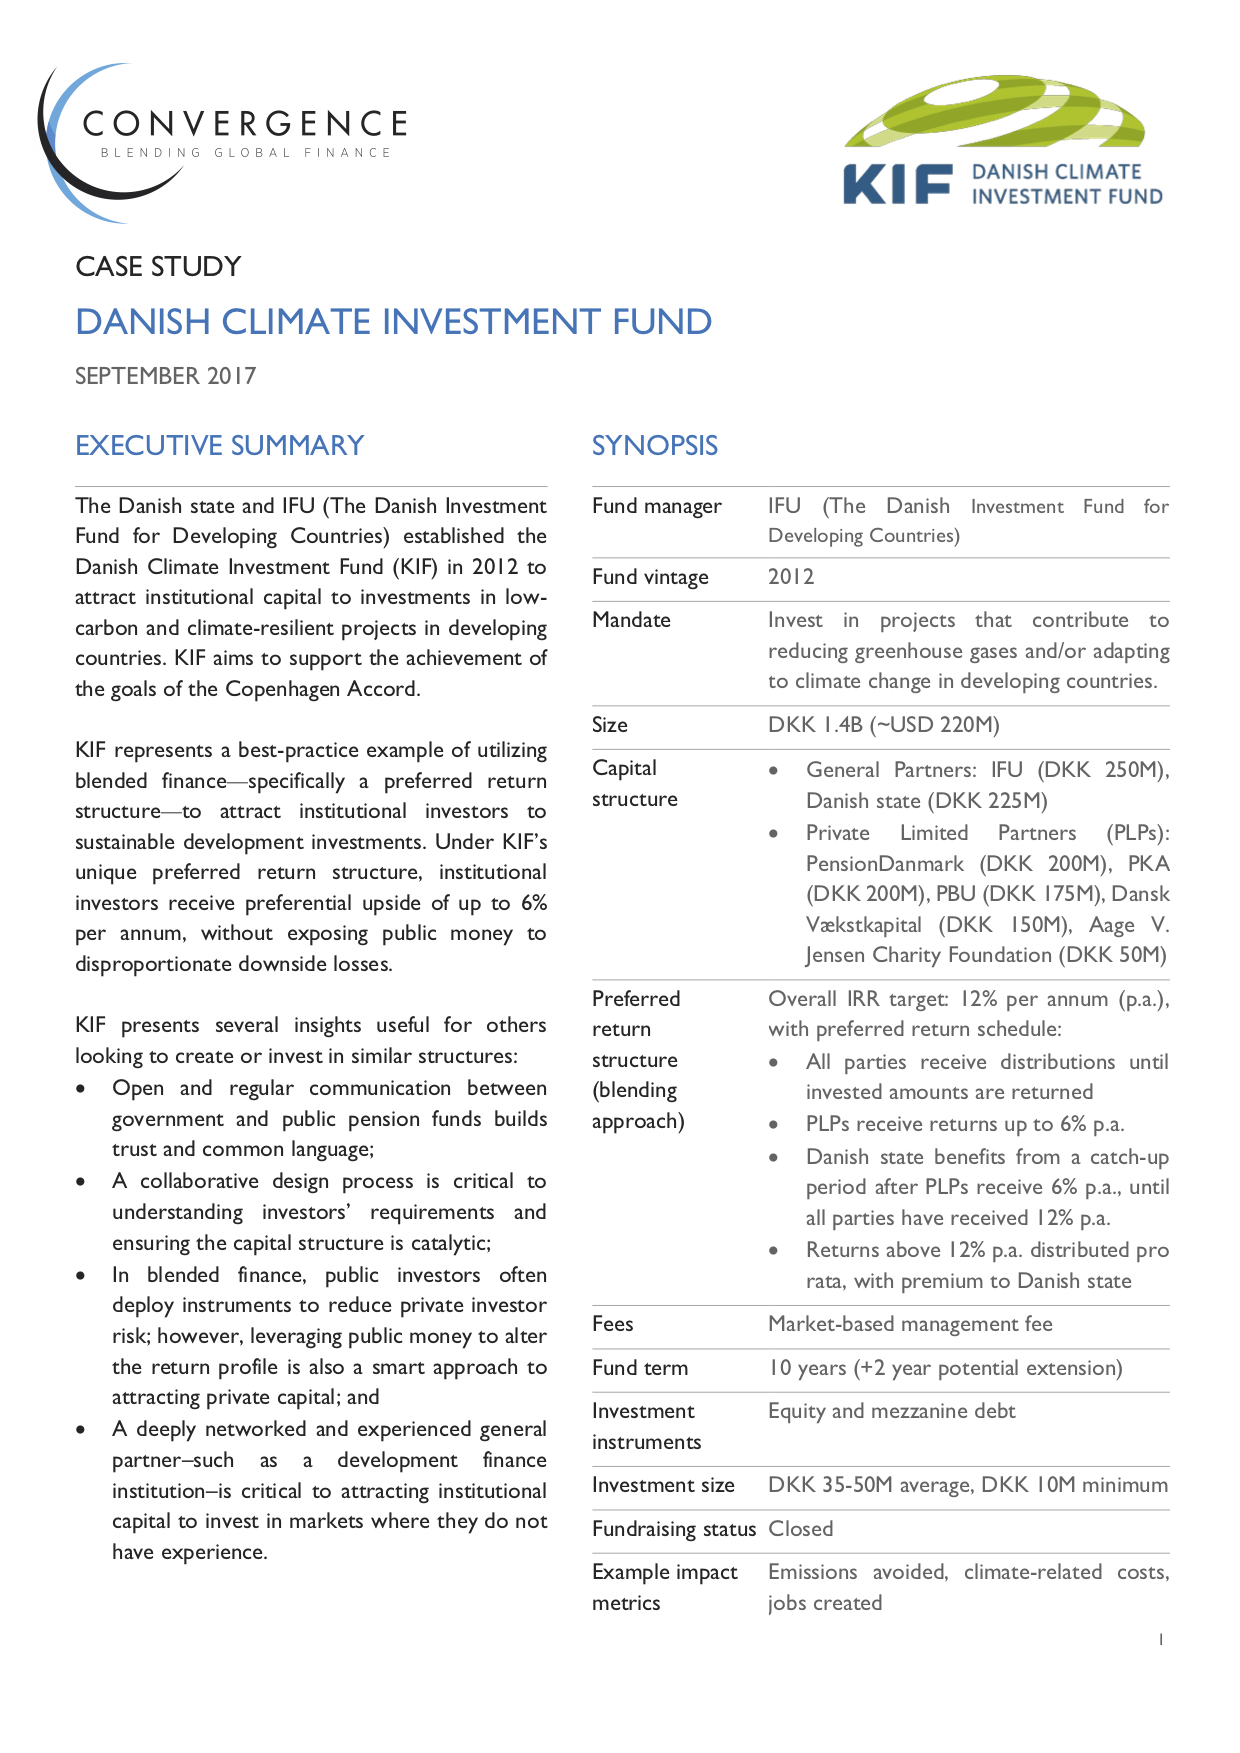 Danish Climate Investment Fund Case Study